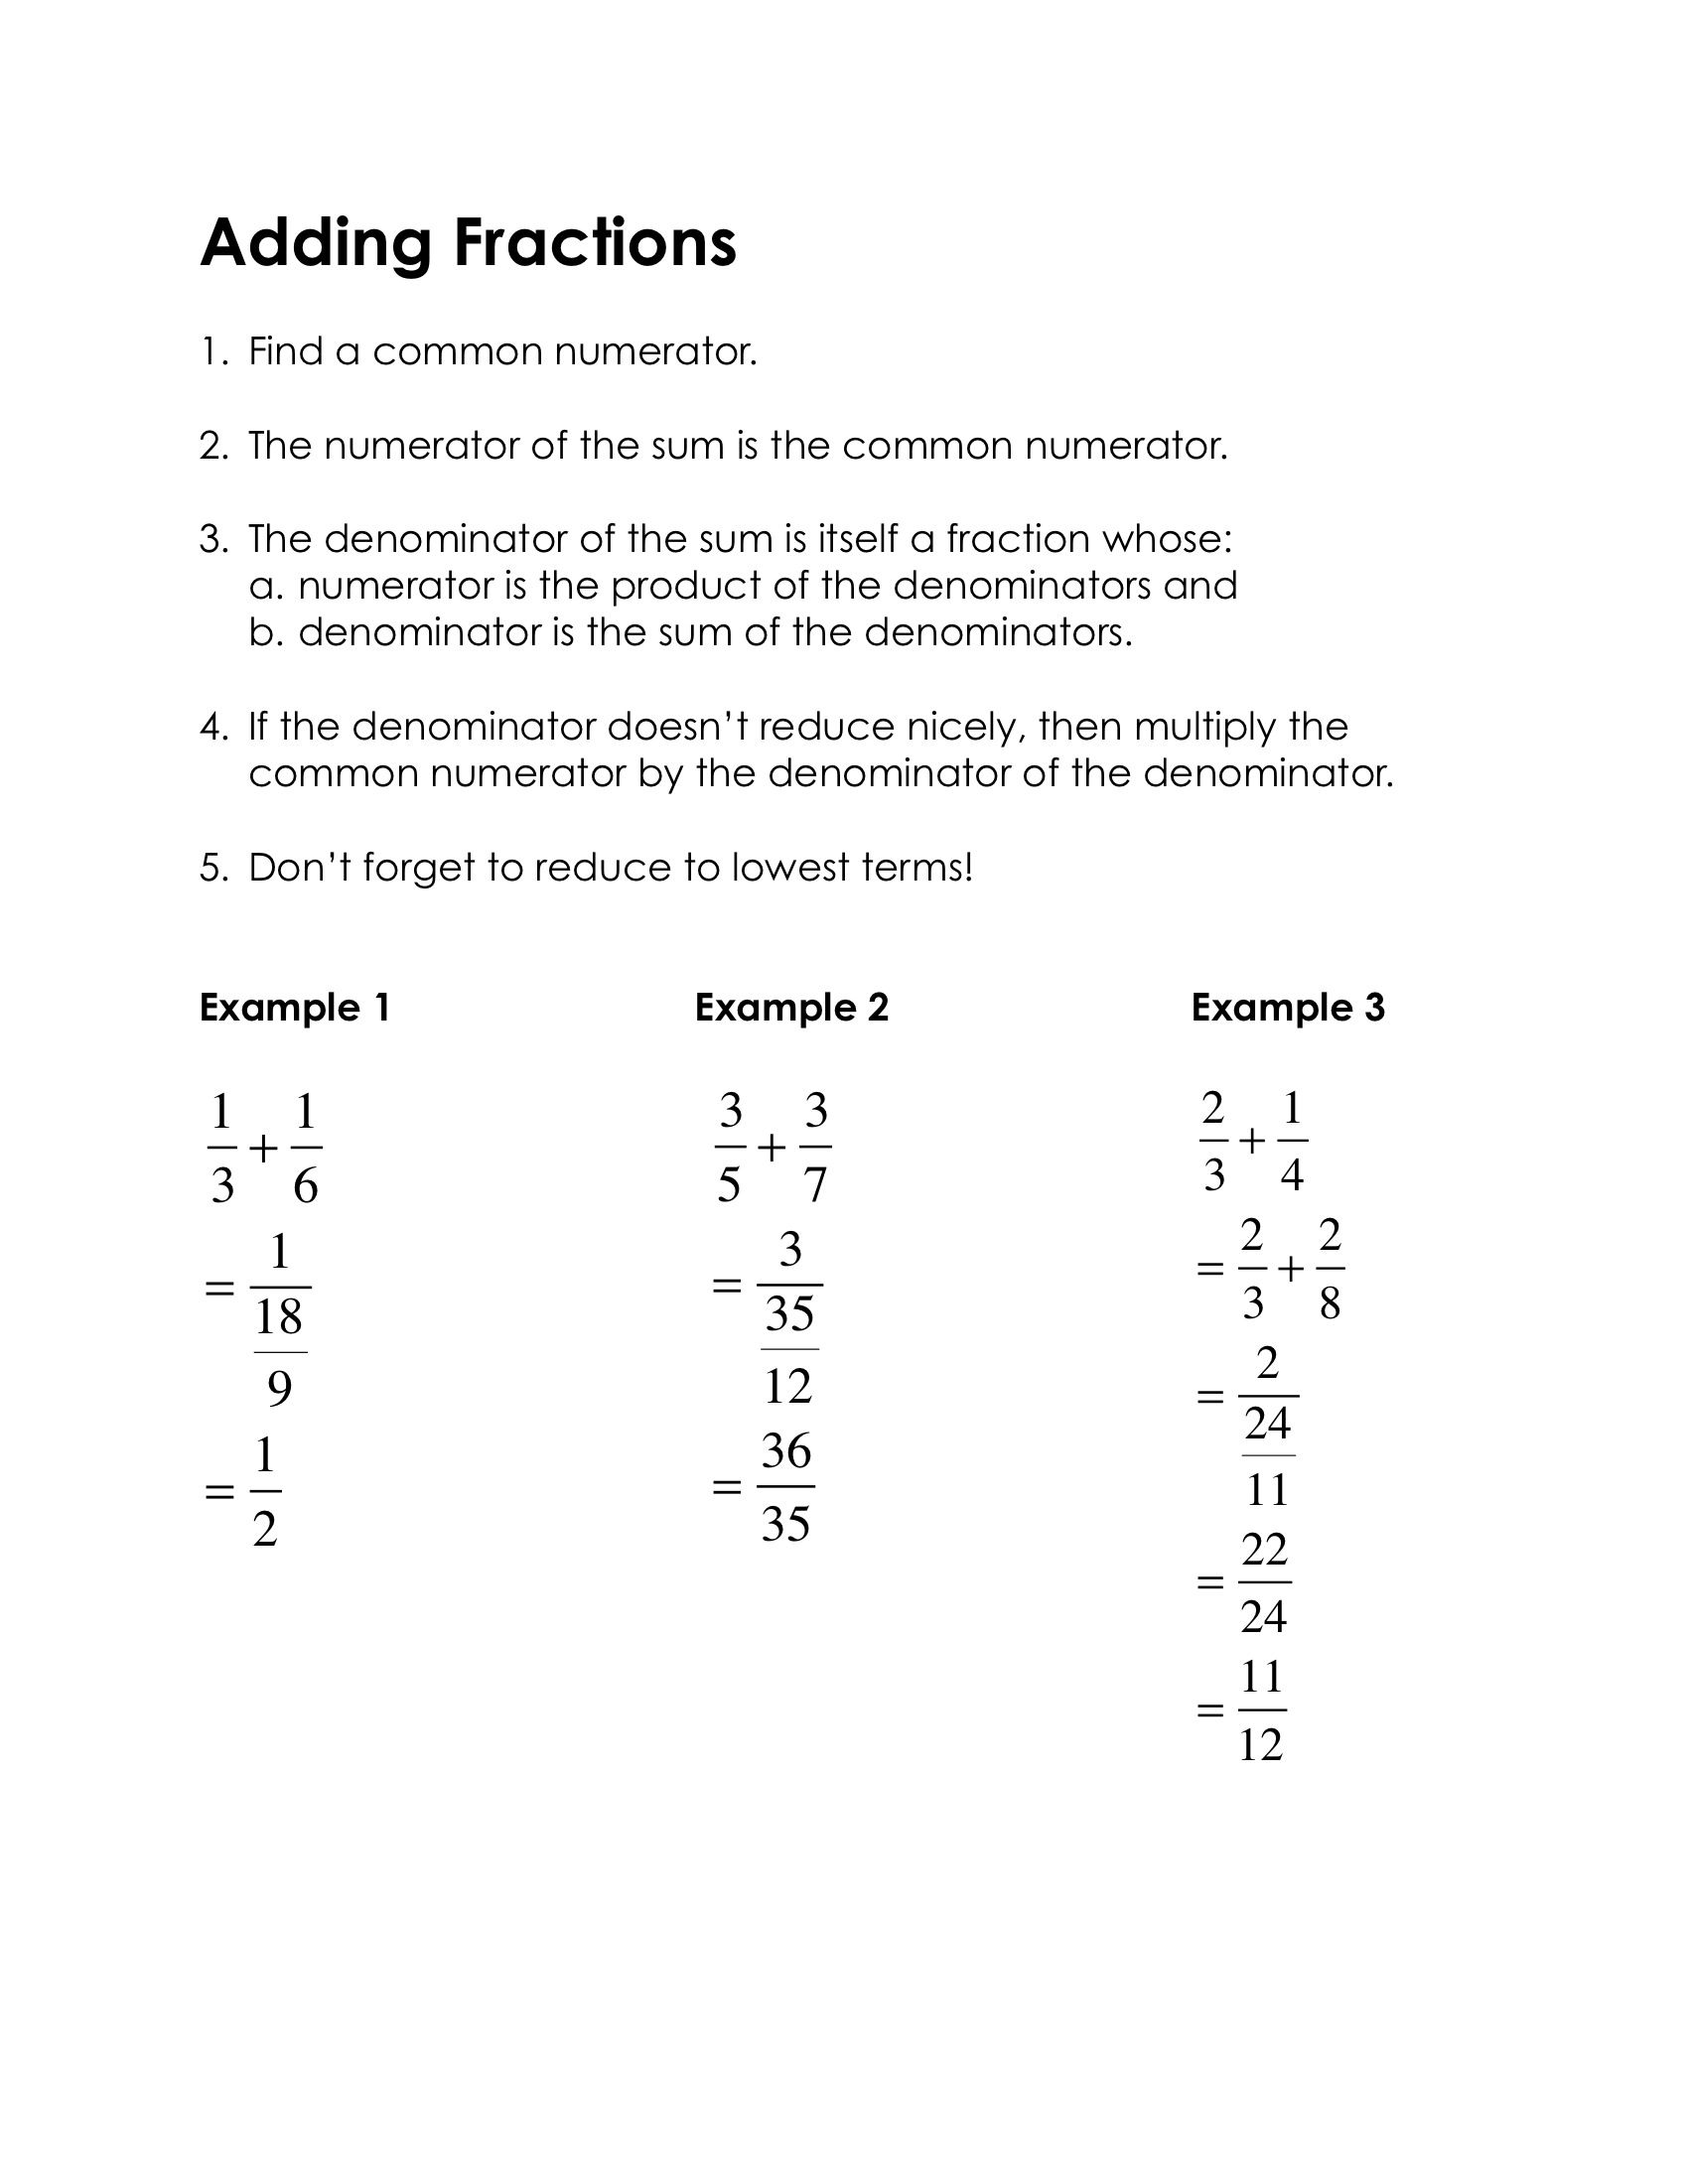 The First Step In Adding Fractions Is To Find A Common